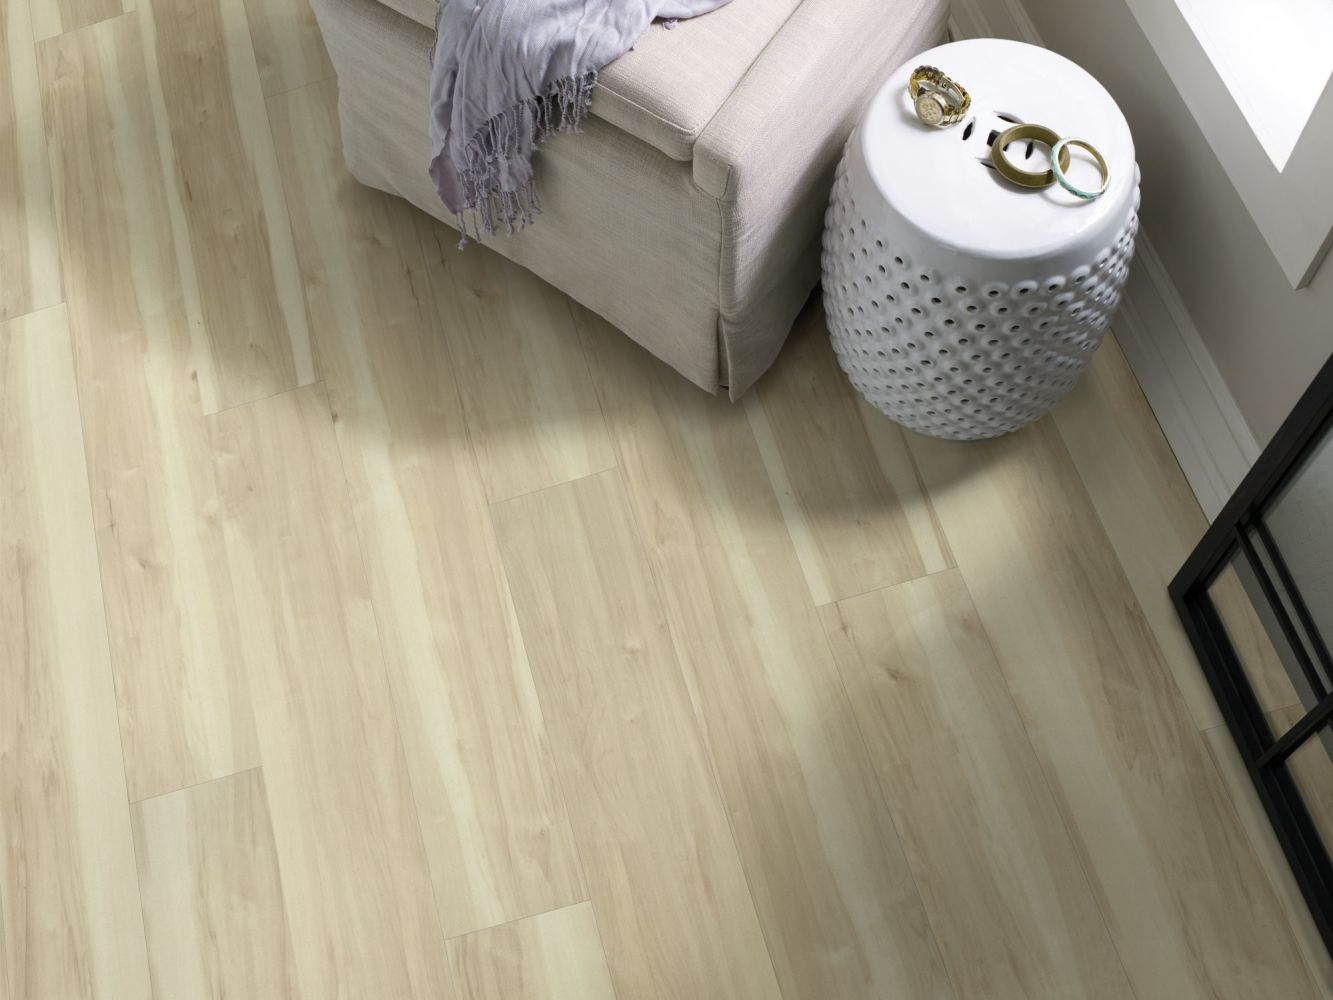 Shaw Floors Resilient Residential Allegiance+ Milled Atlas Maple 01039_2018V